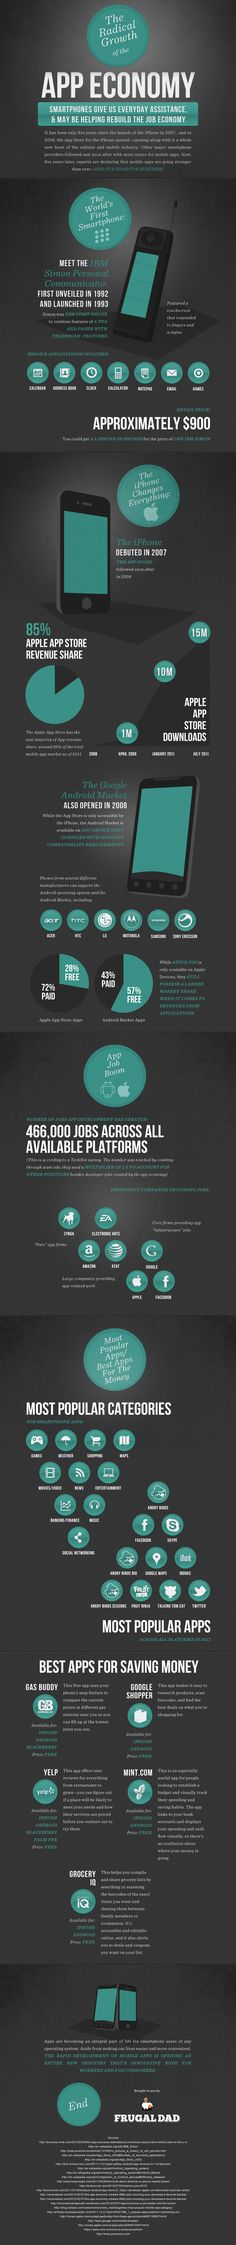 The Radical Growth of the App Economy [INFOGRAPHIC]